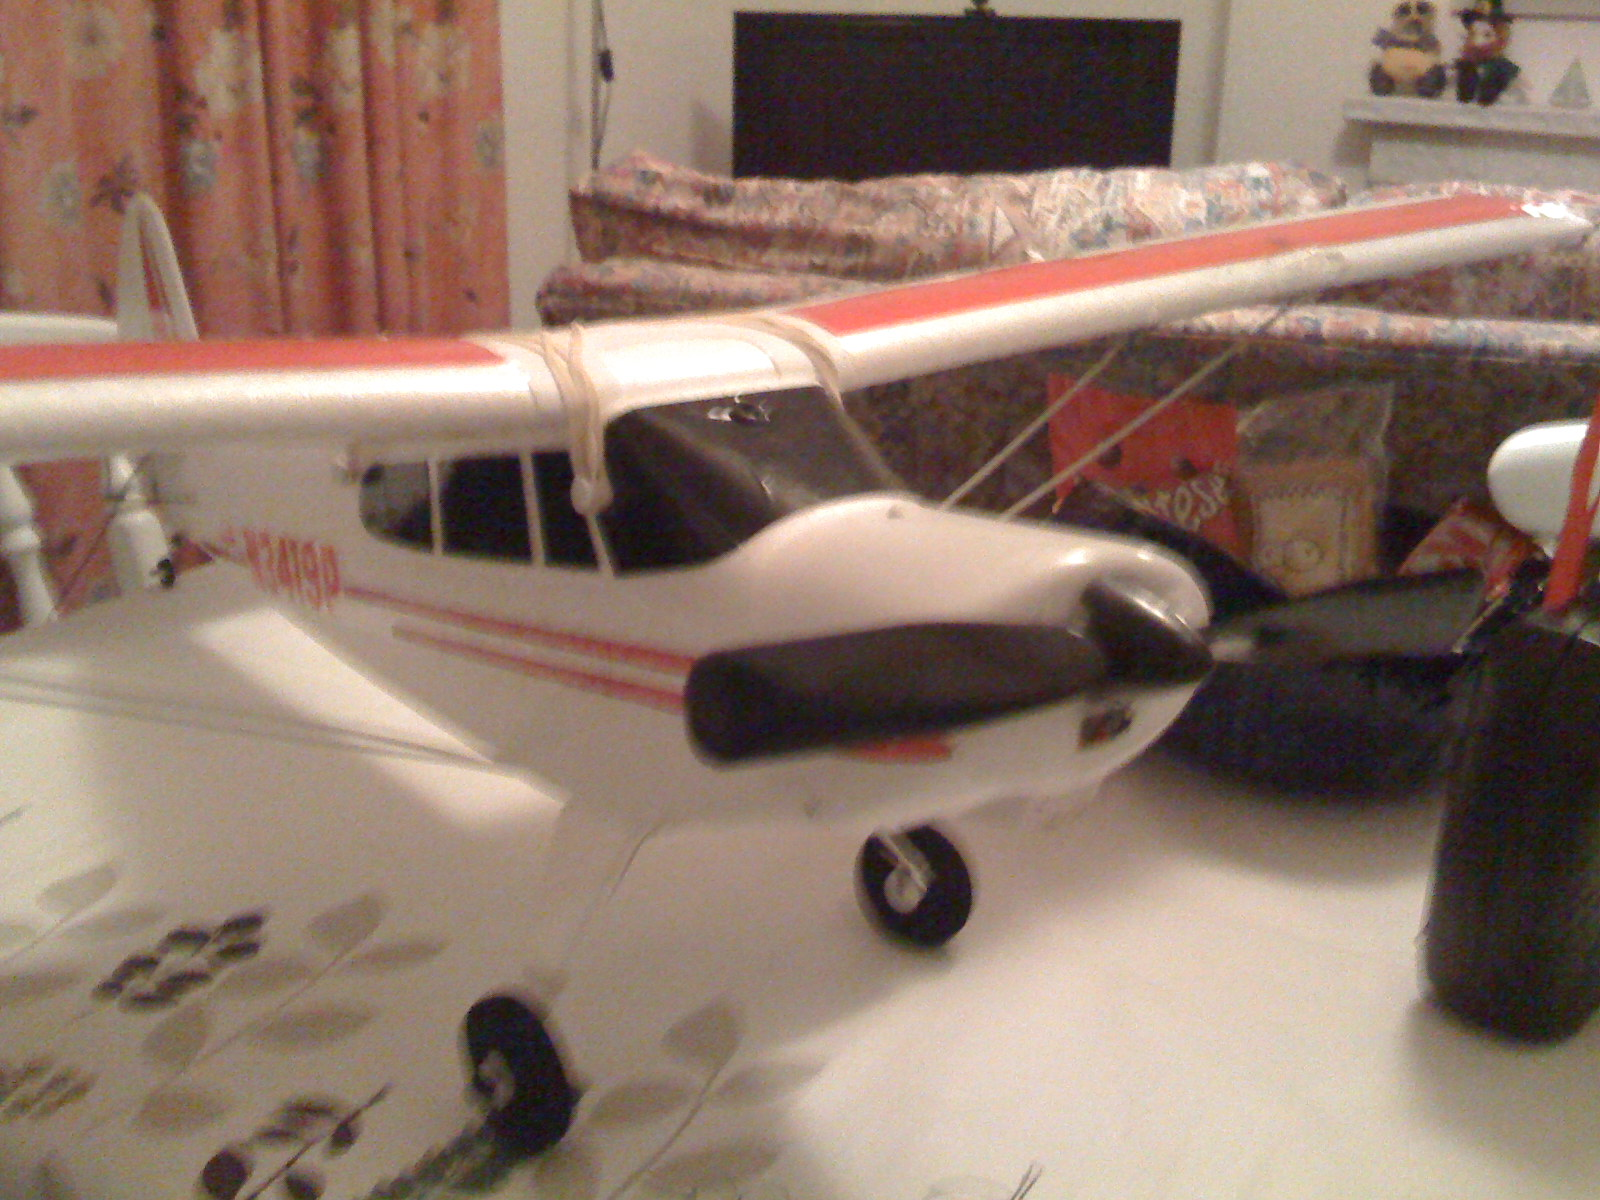 Hobbyone's Super Cub (ugly photo)